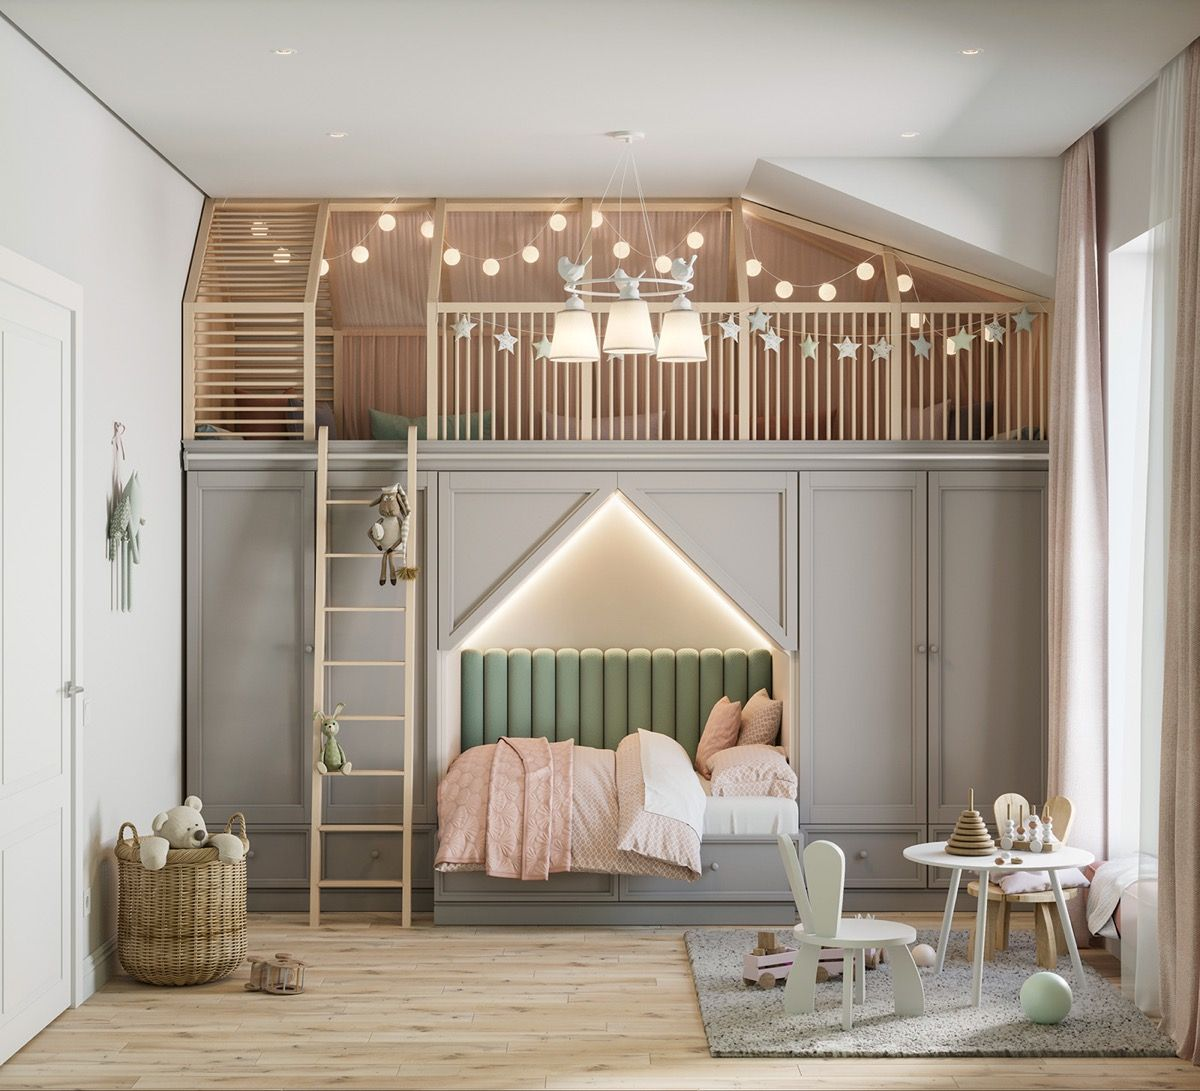 51 Modern Kid's Room Ideas With Tips & Accessories